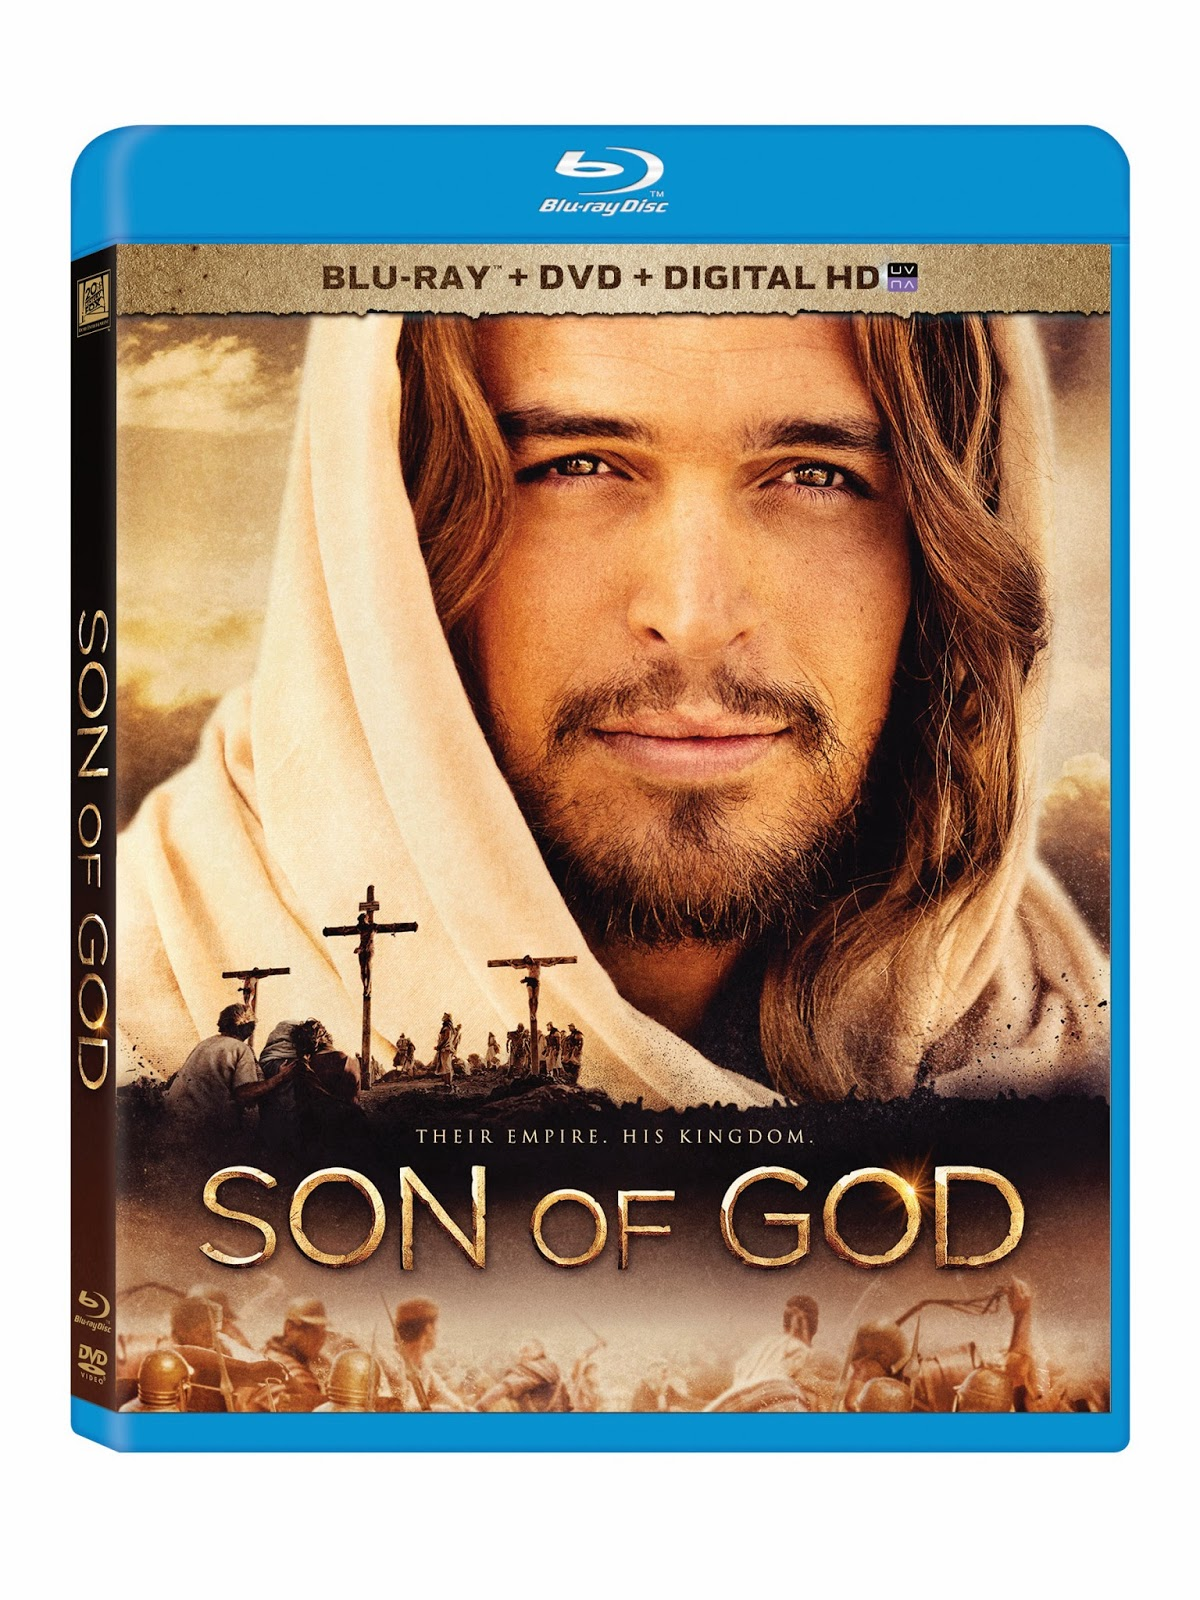 Blu-ray Review - Son of God